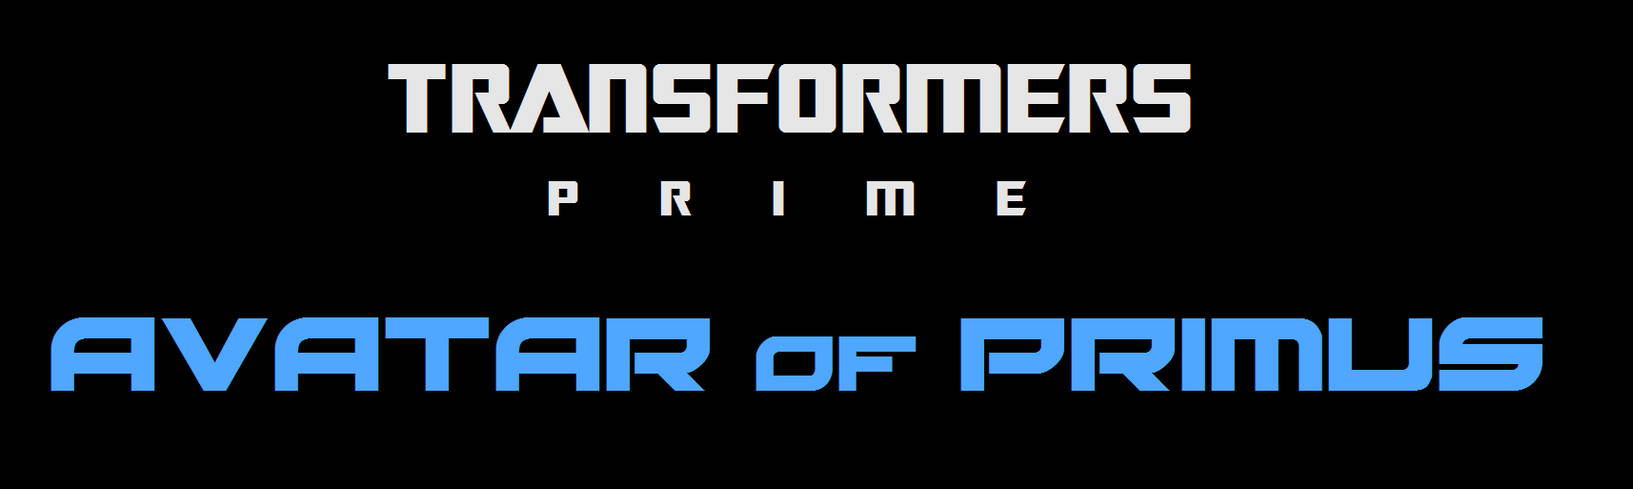 Transformers Prime, Avatar of Primus Title by MetroXLR on